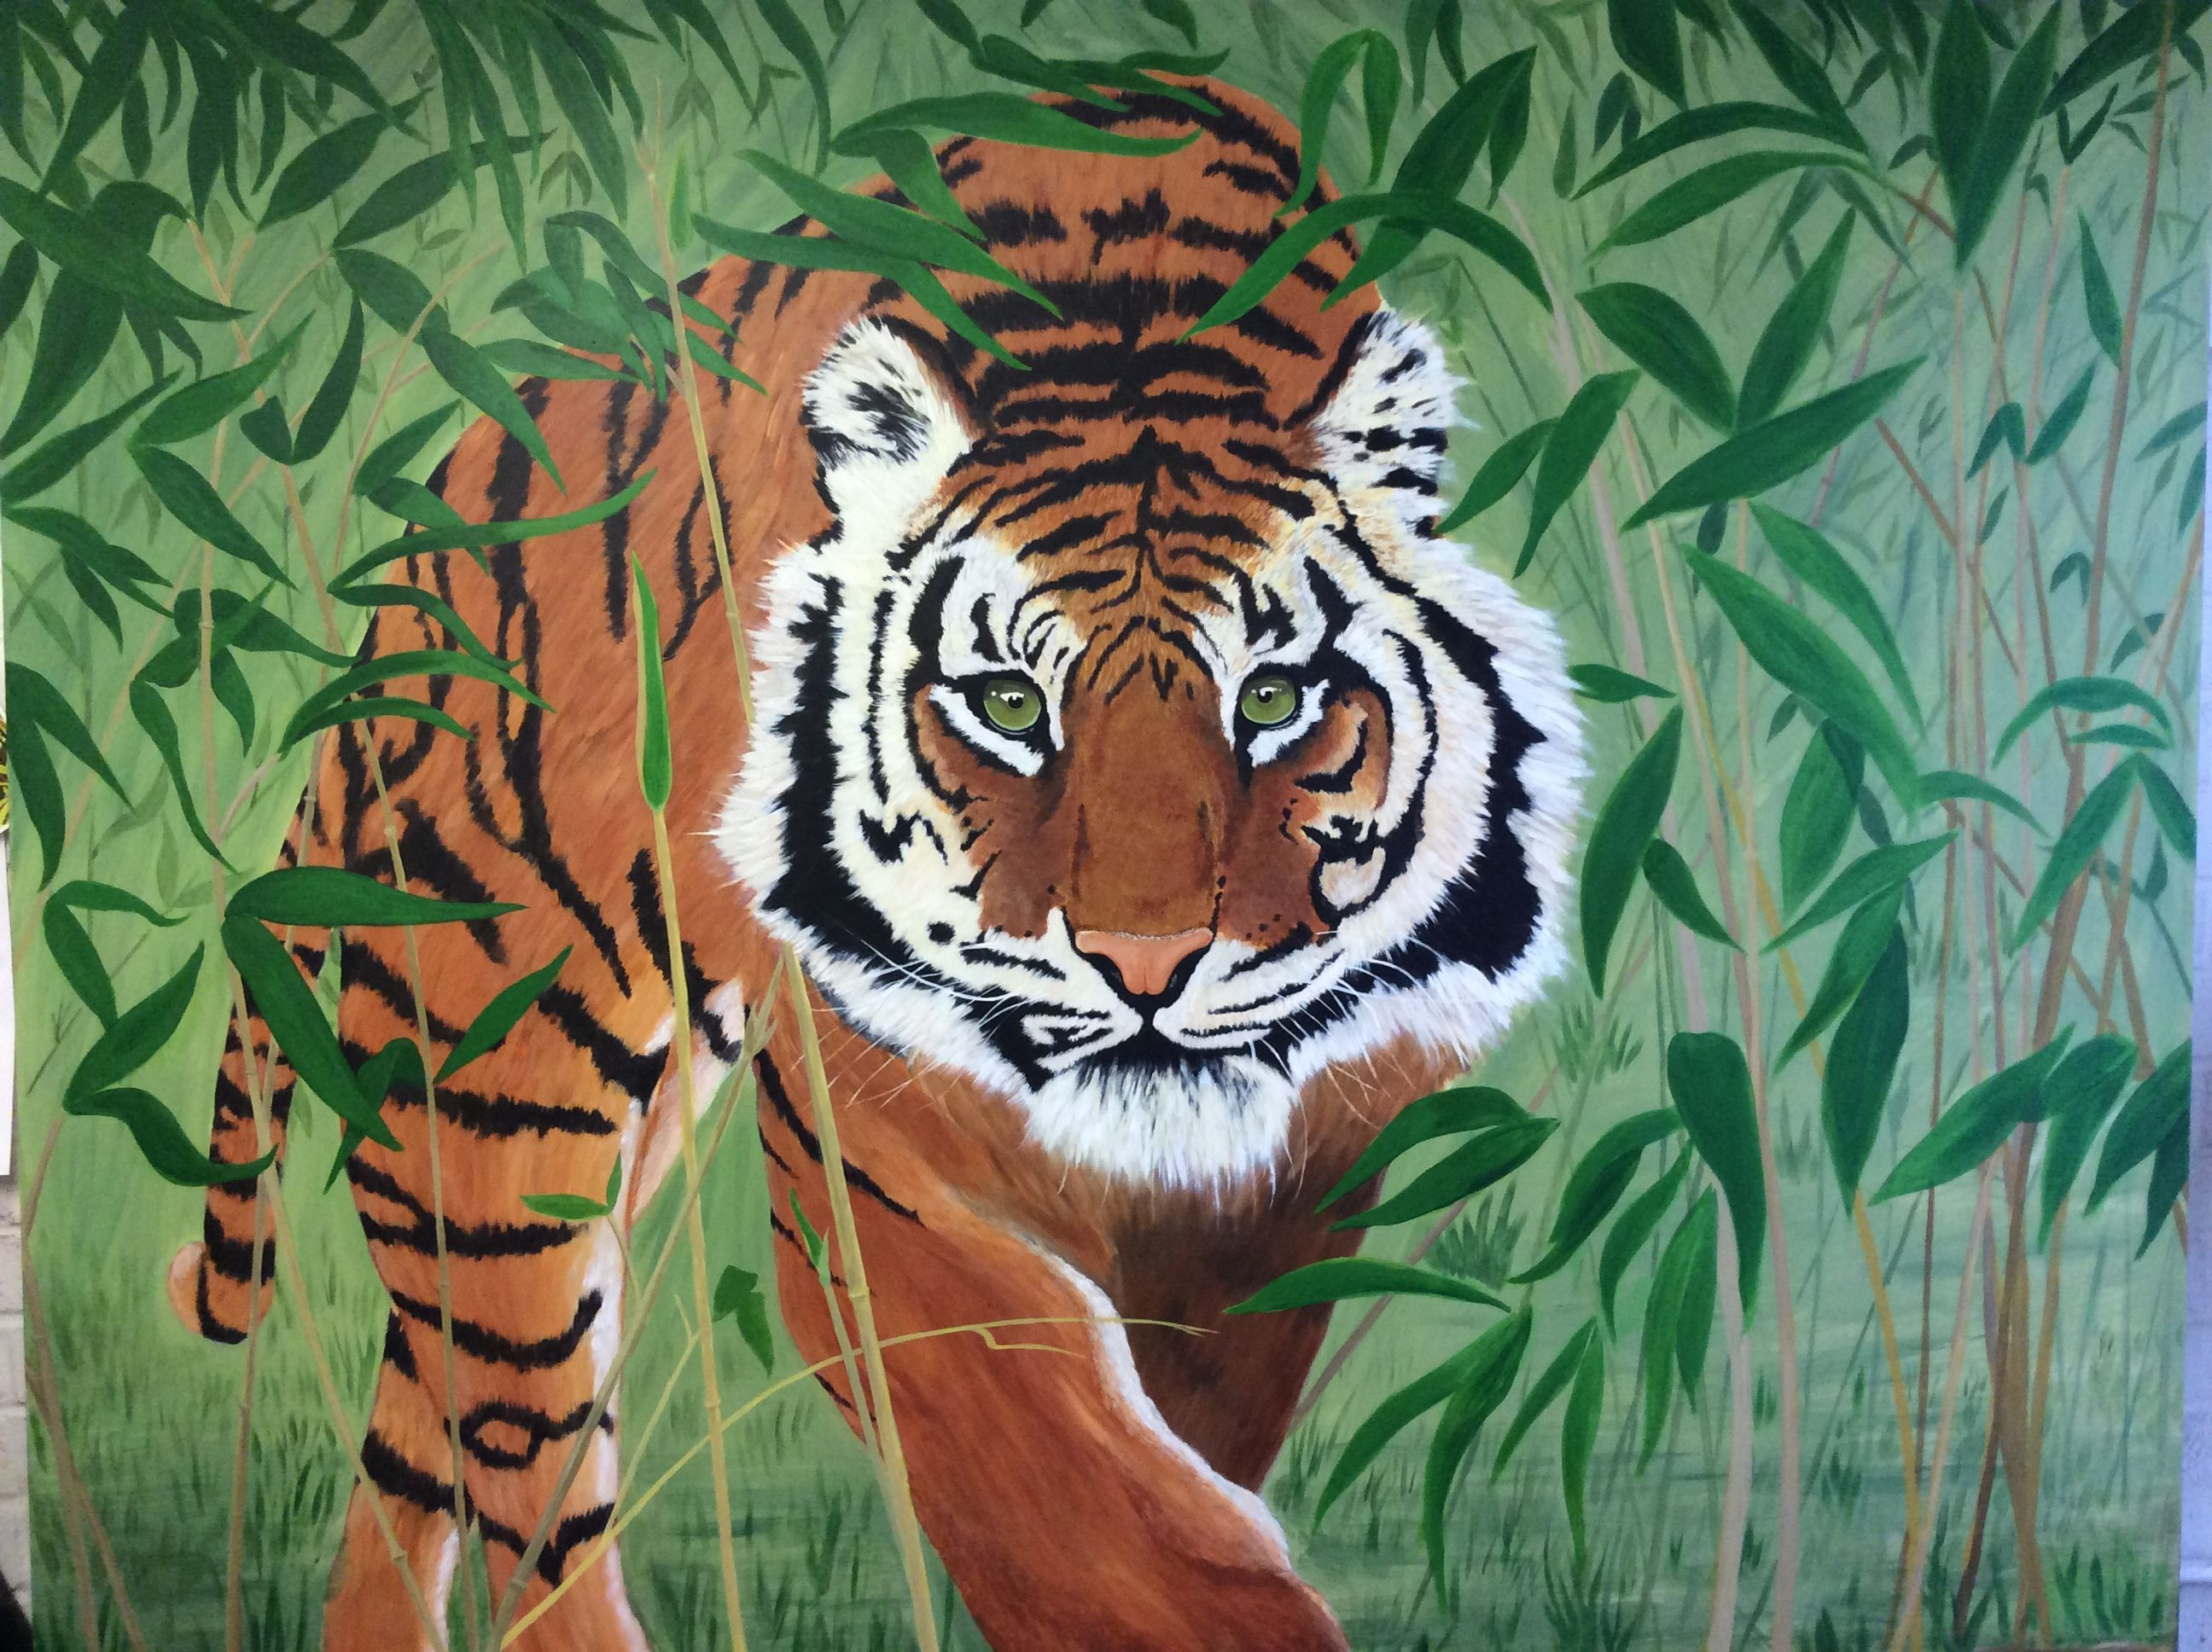 Tiger Mural By Murals By Wallworx Jungle Mural Mural Painting Cat Safe Plants